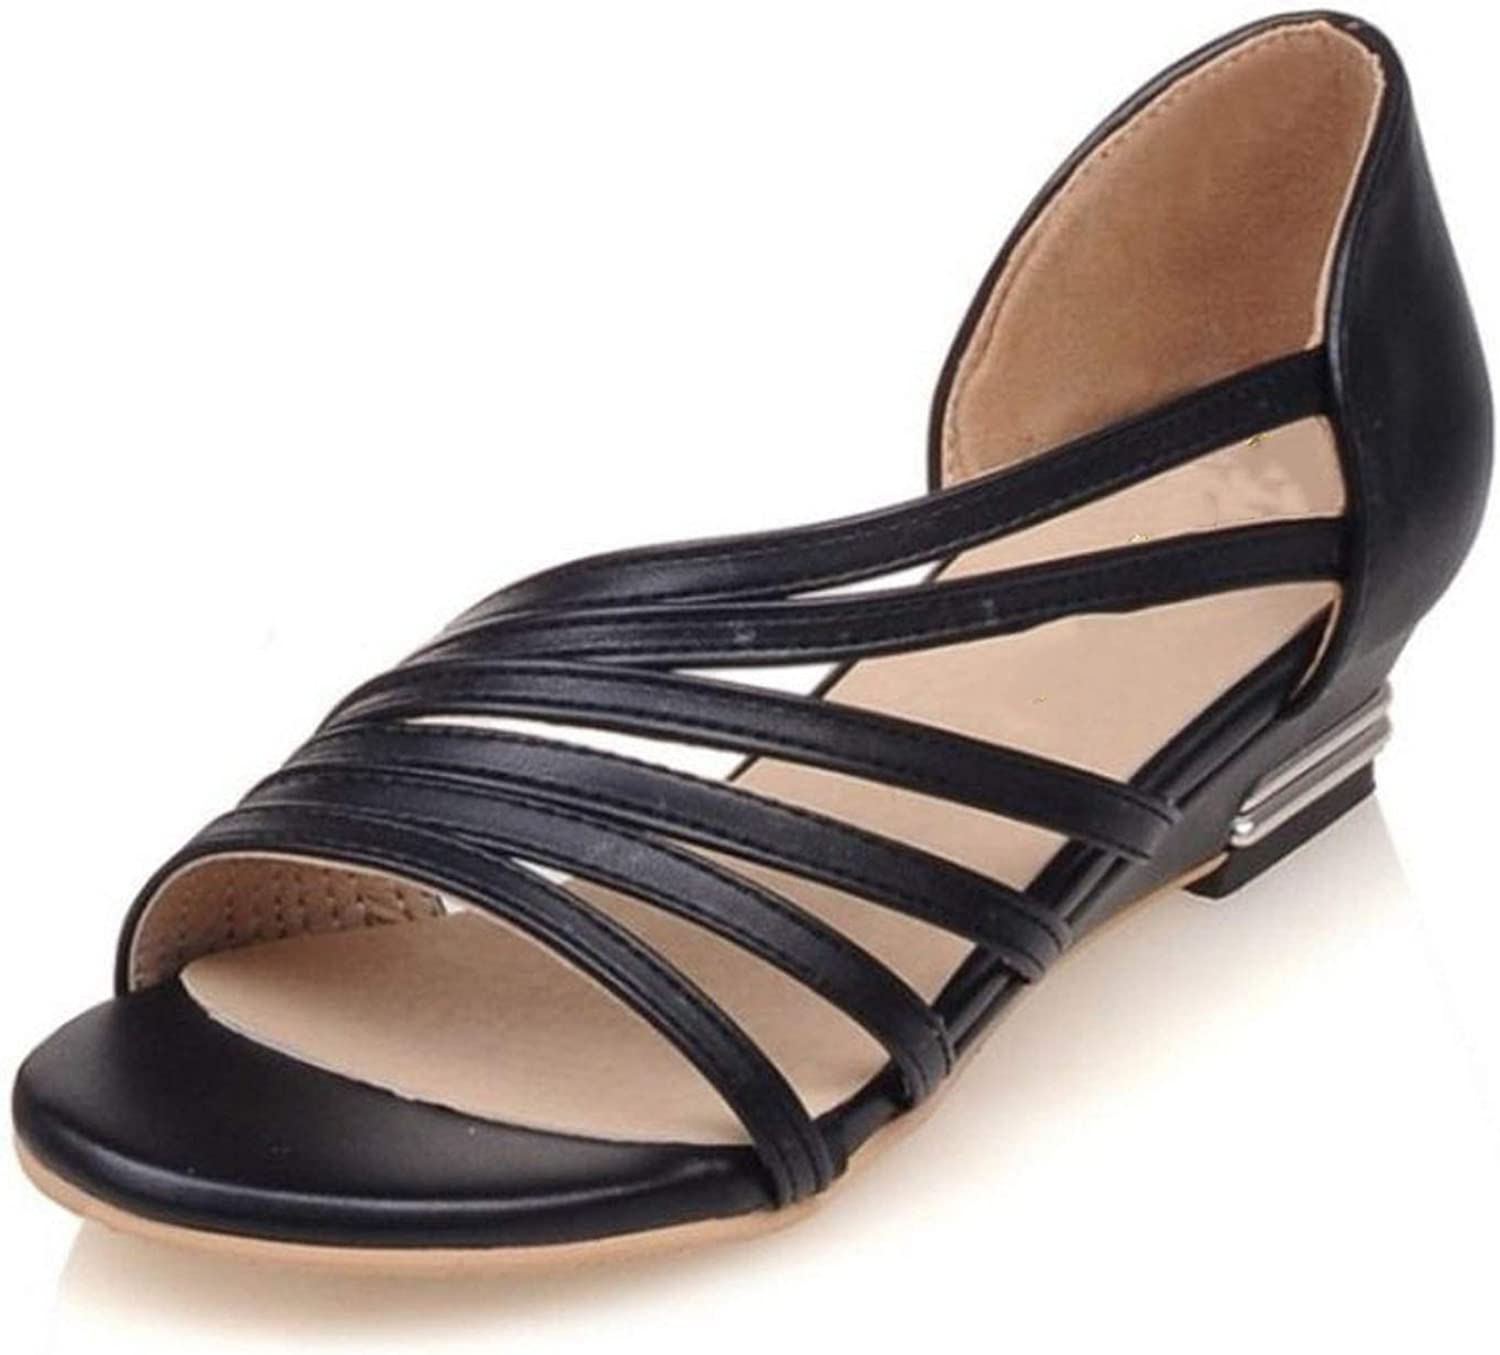 Fairly Flats Peep Toe shoes Cross Strap Solid color All Match Flat Vintage s,Black,10.5